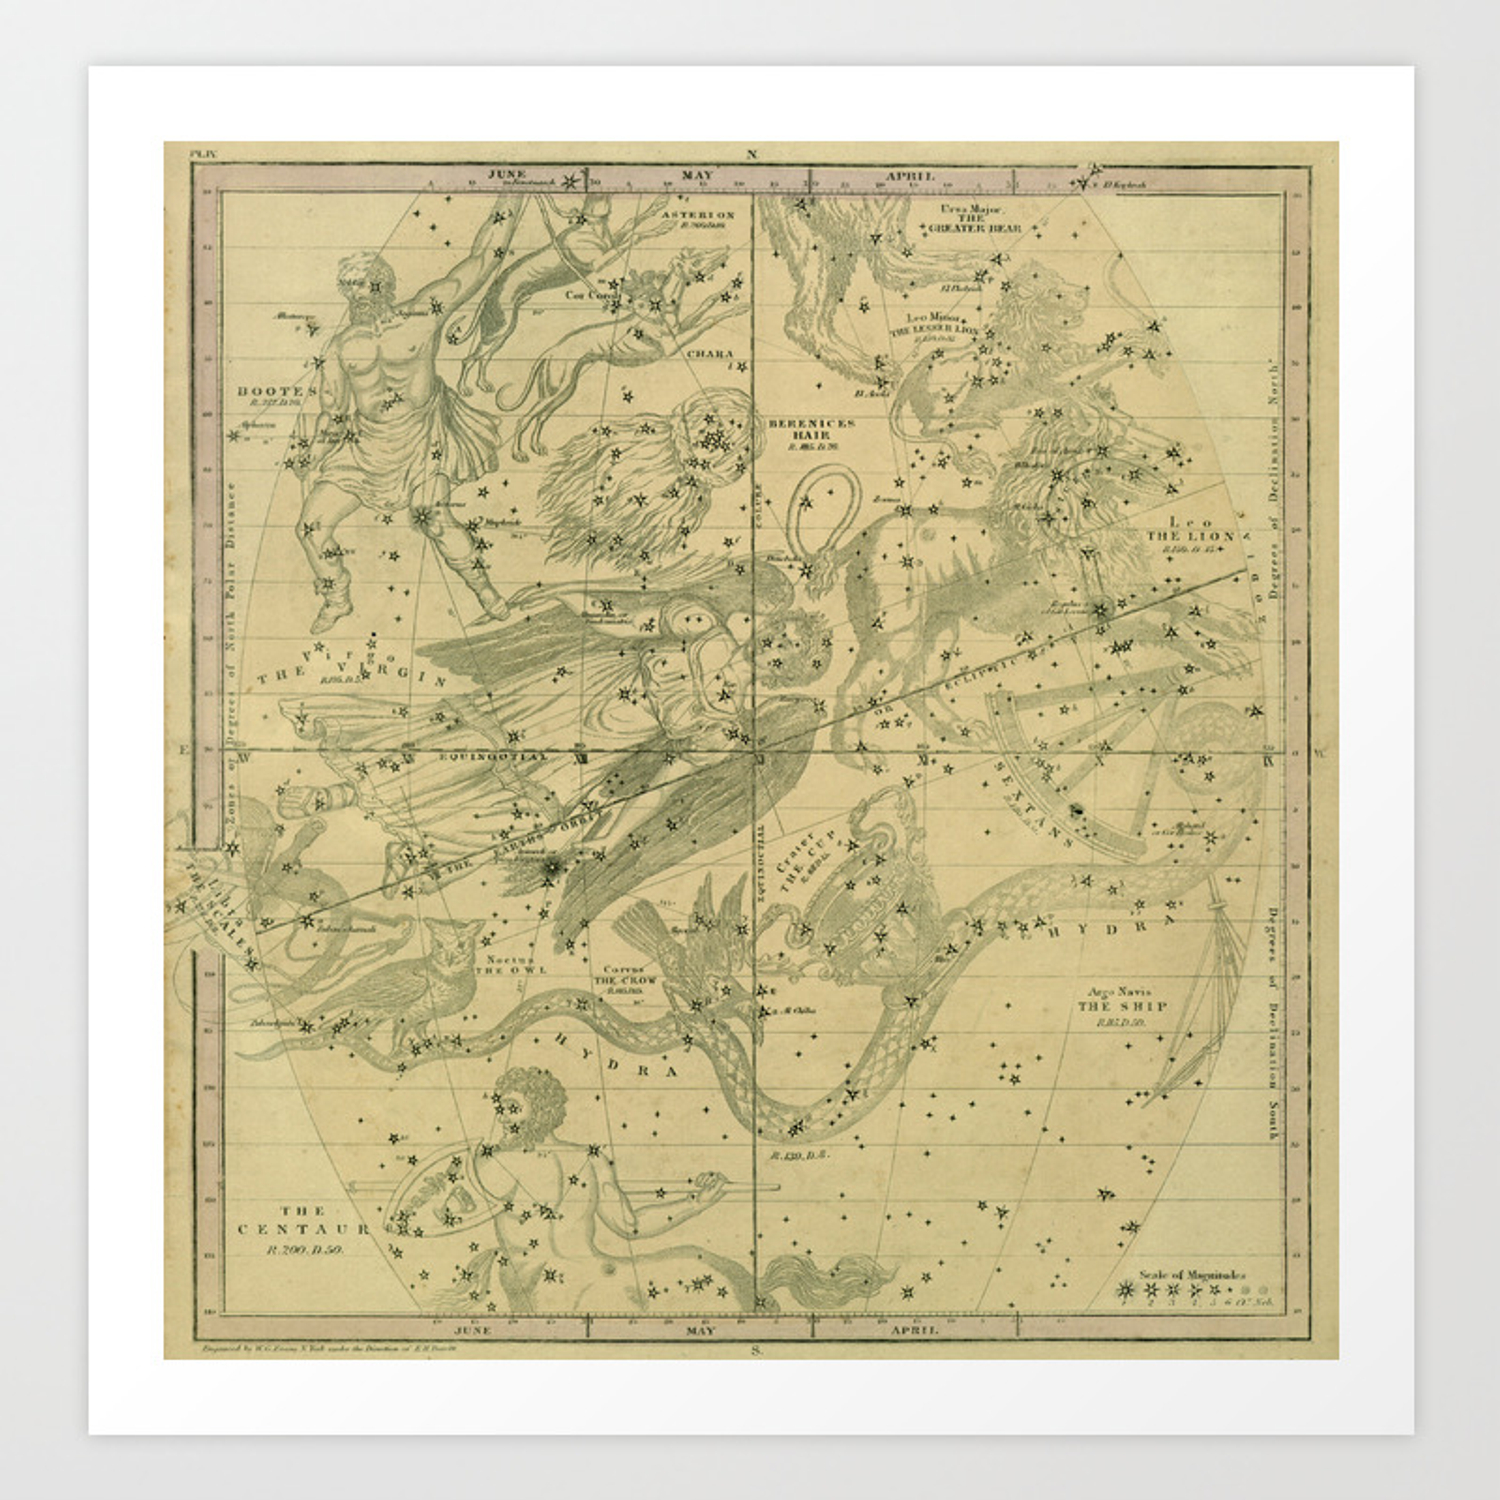 Antique Celestial Map June May April Art Print on locator map, ocean map, star map, classic map, mappa mundi, magic map, traditional map, cats map, silver map, orienteering map, eden map, seasons map, coast to coast map, topological map, no map, street map, twilight map, complete map, human map, beautiful map, route choice, nature map, star catalogue, astral map, sky map, t and o map, geologic map, choropleth map, love map,